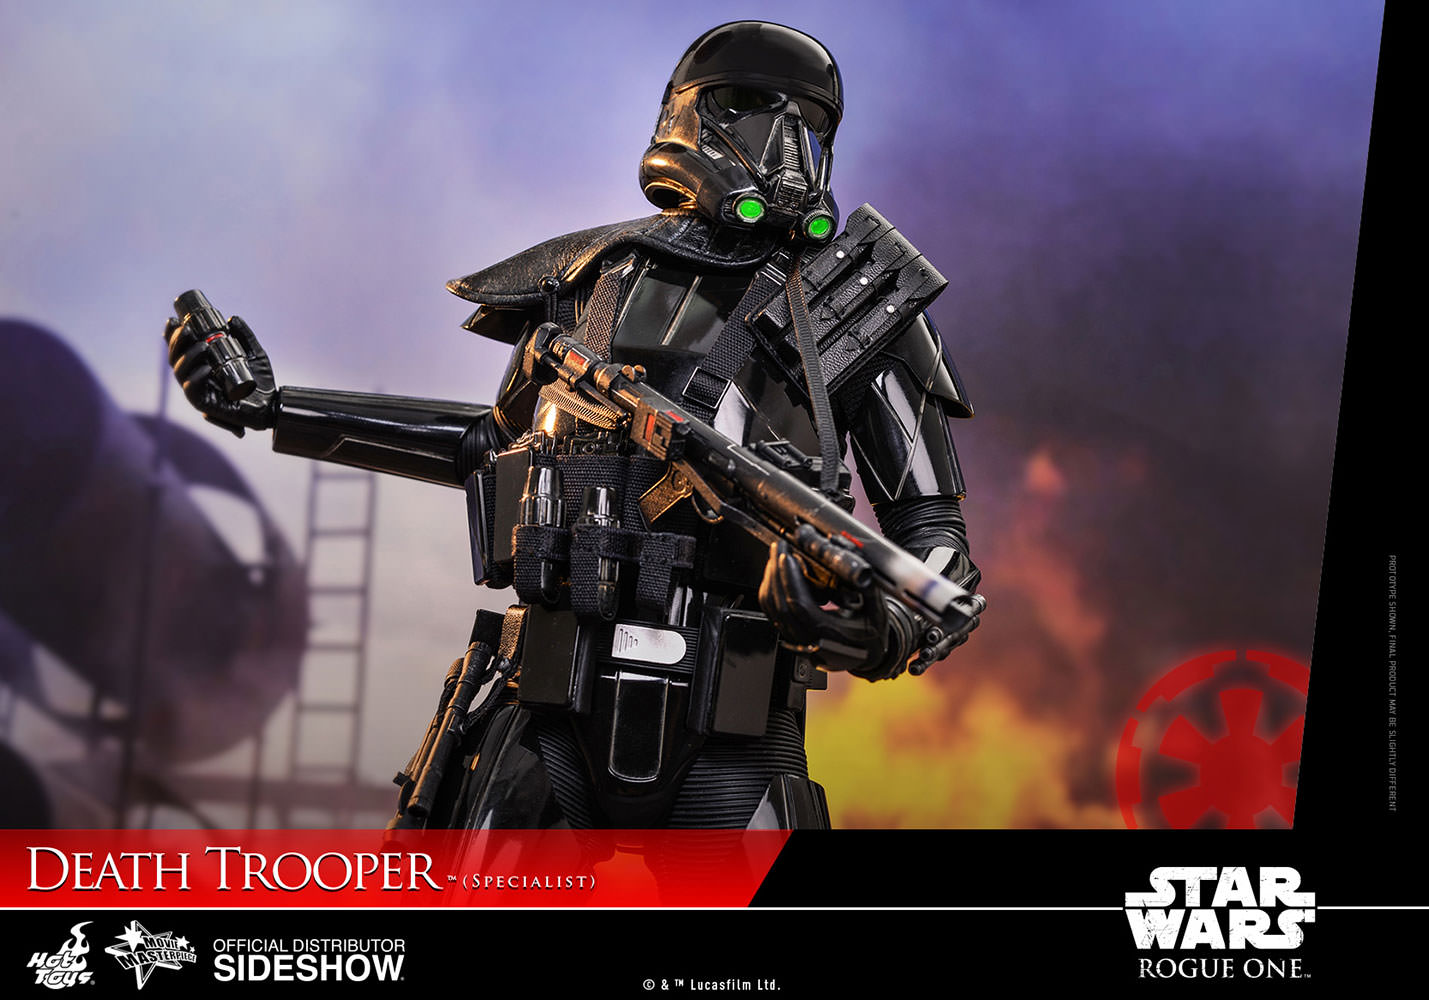 Star Wars Death Trooper Specialist Sixth Scale Figure By Hot 1 6 Toys